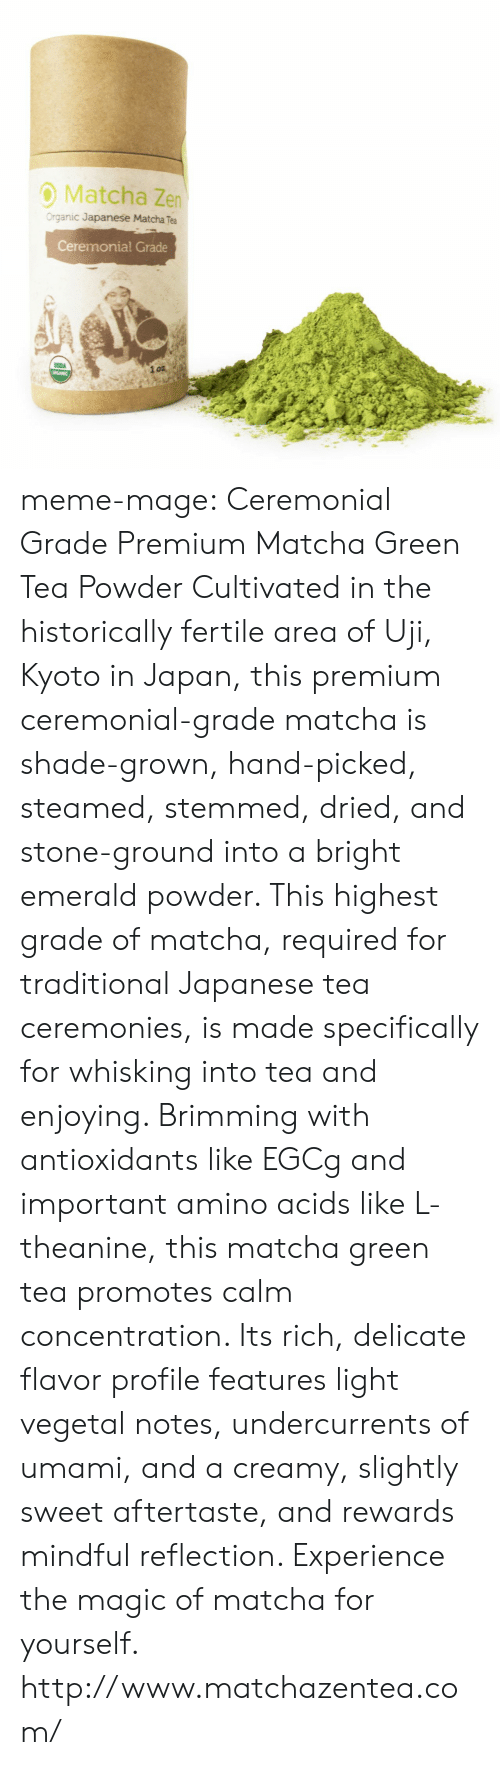 Amino: O Matcha Zen  Organic Japanese Matcha Tea  Ceremonial Grade meme-mage:    Ceremonial Grade Premium Matcha Green Tea Powder   Cultivated in the historically fertile area of Uji, Kyoto in Japan, this premium ceremonial-grade matcha is shade-grown, hand-picked, steamed, stemmed, dried, and stone-ground into a bright emerald powder. This highest grade of matcha, required for traditional Japanese tea ceremonies, is made specifically for whisking into tea and enjoying.  Brimming with antioxidants like EGCg and important amino acids like L-theanine, this matcha green tea promotes calm concentration. Its rich, delicate flavor profile features light vegetal notes, undercurrents of umami, and a creamy, slightly sweet aftertaste, and rewards mindful reflection. Experience the magic of matcha for yourself.  http://www.matchazentea.com/